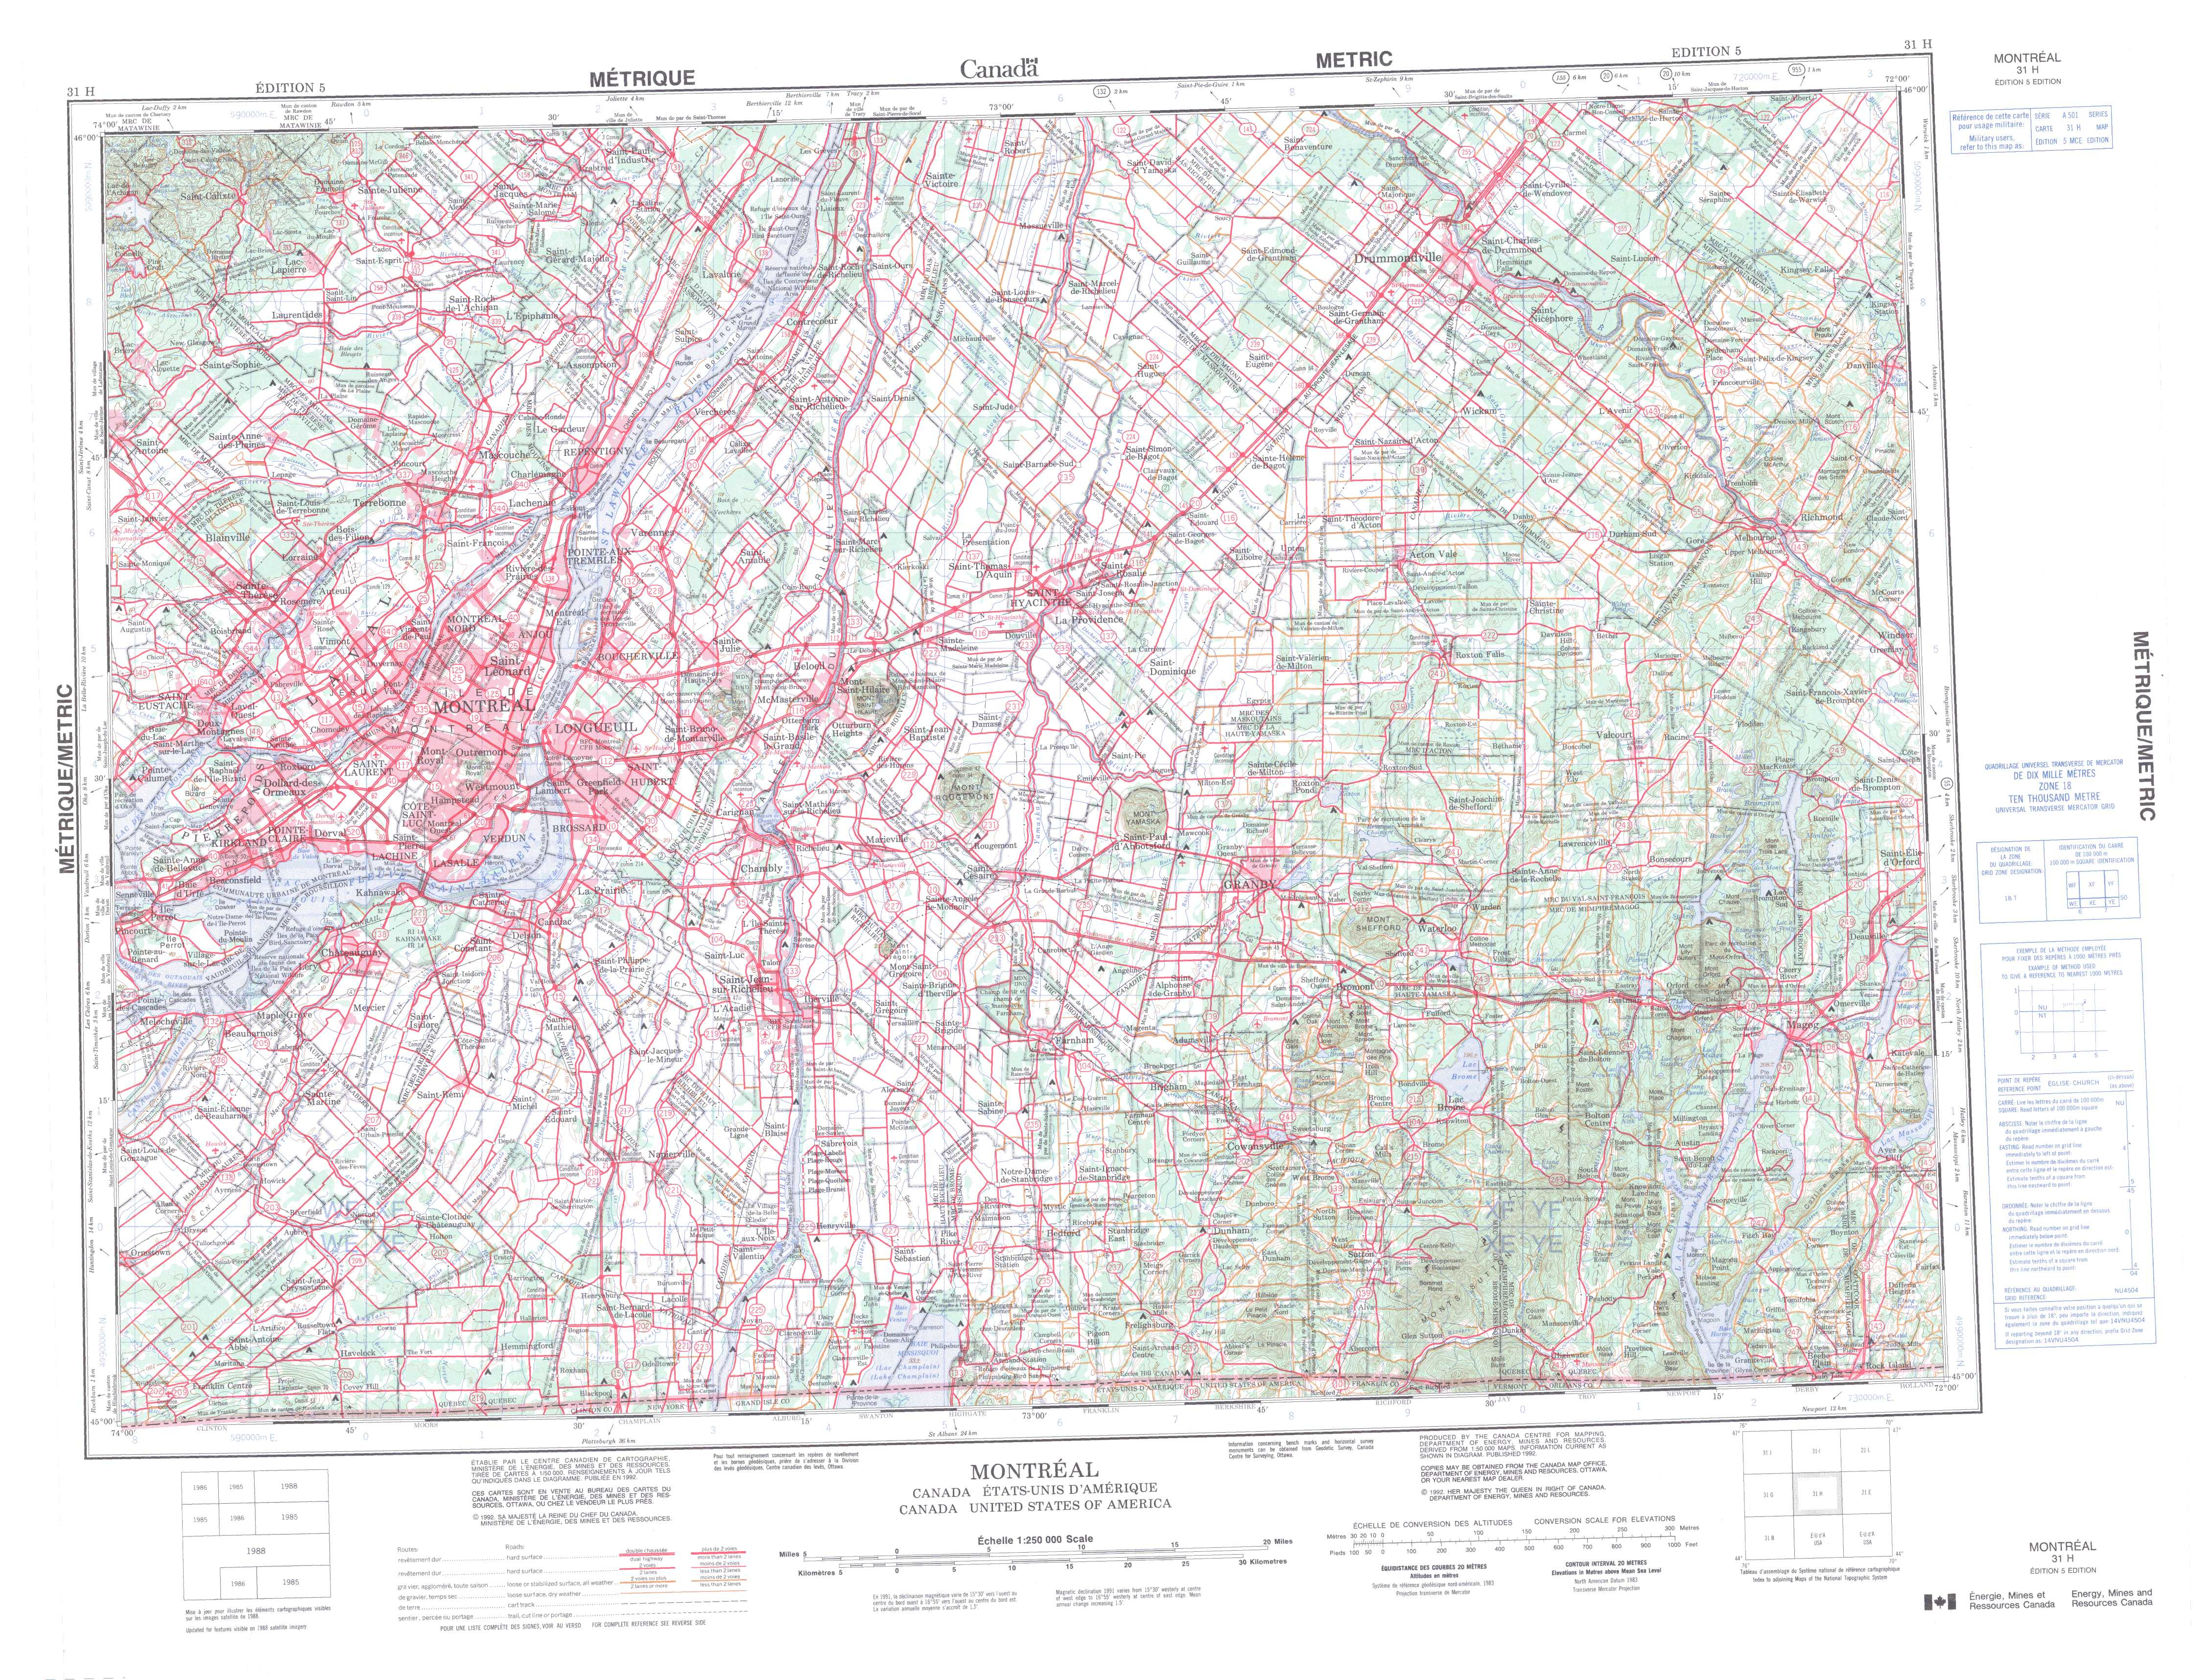 Printable Topographic Map Of Montreal 031H, Qc - Free Printable Topo Maps